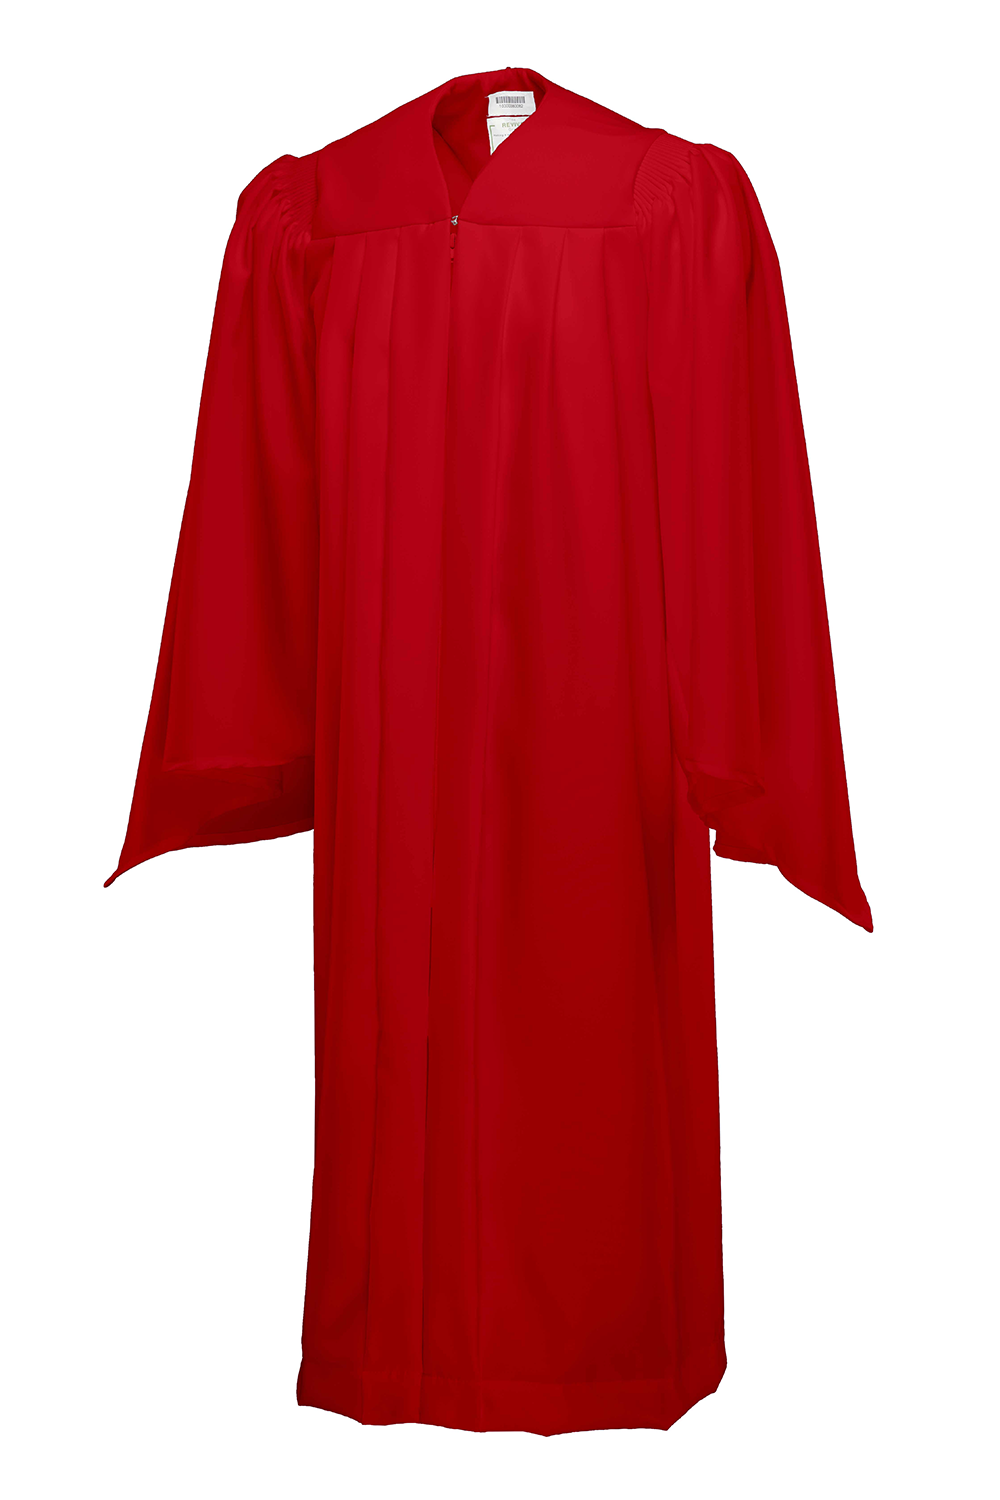 Choir Robes Deluxe Jostens Robes